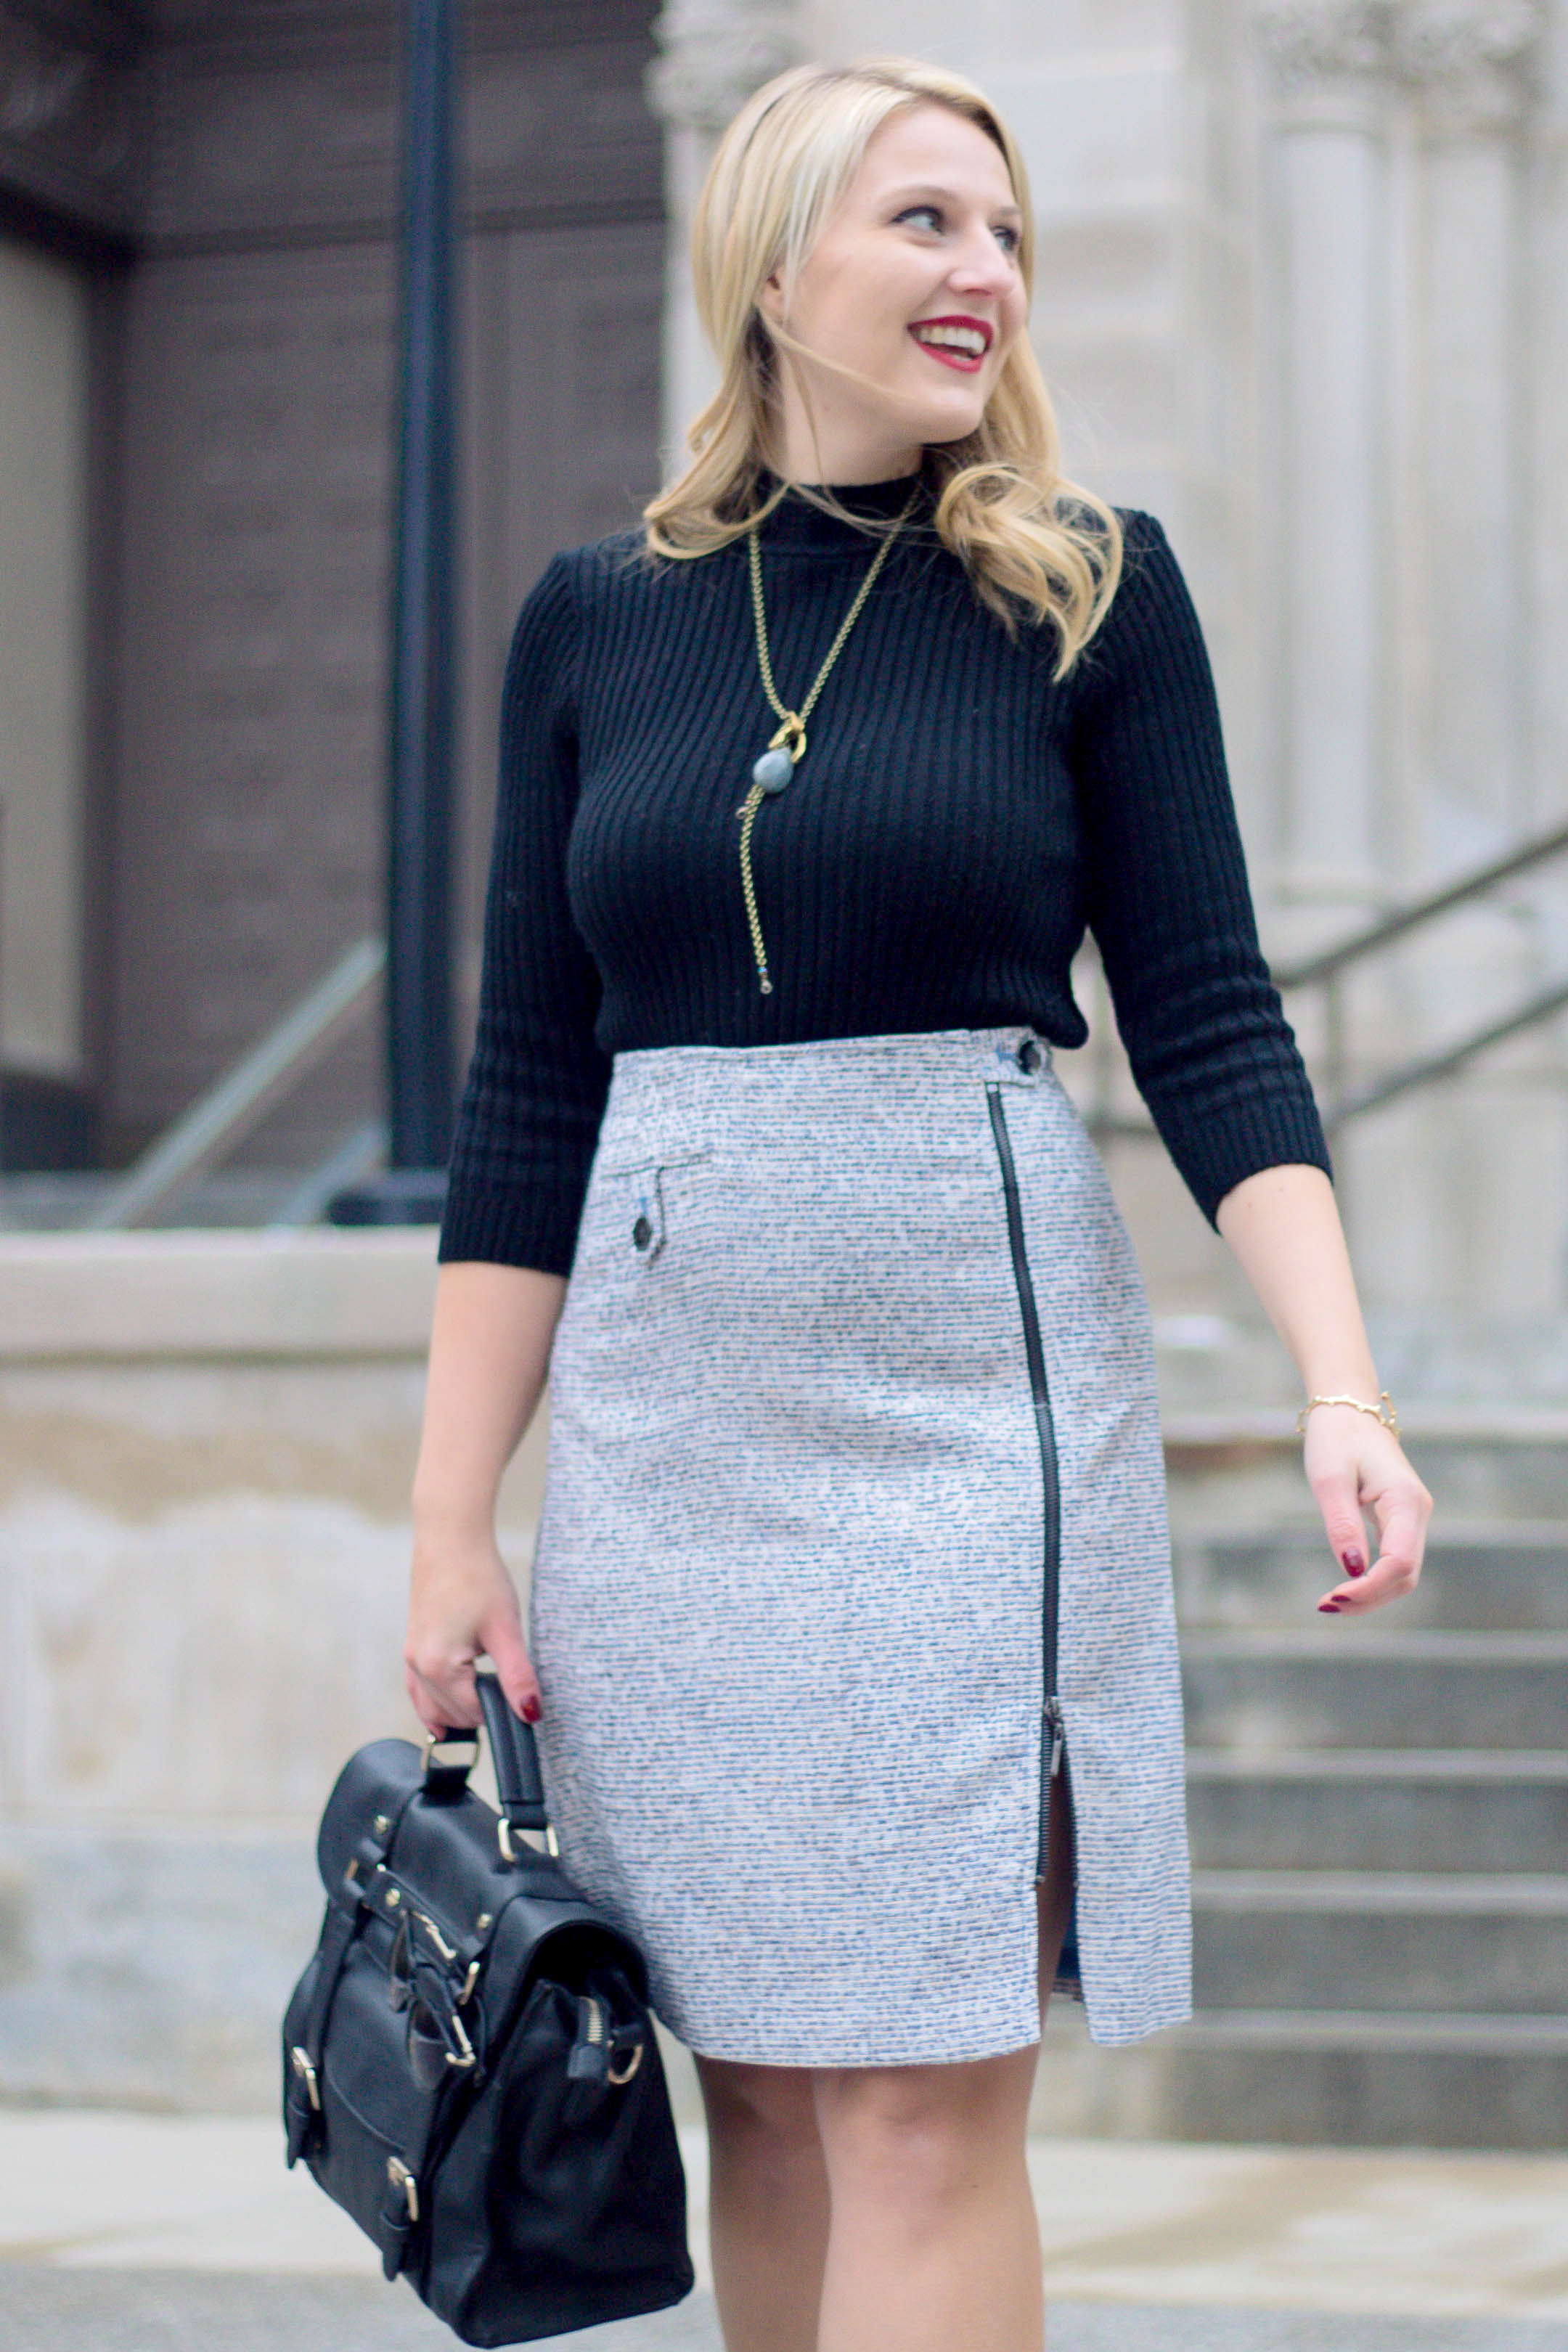 Why you should own a tweed skirt